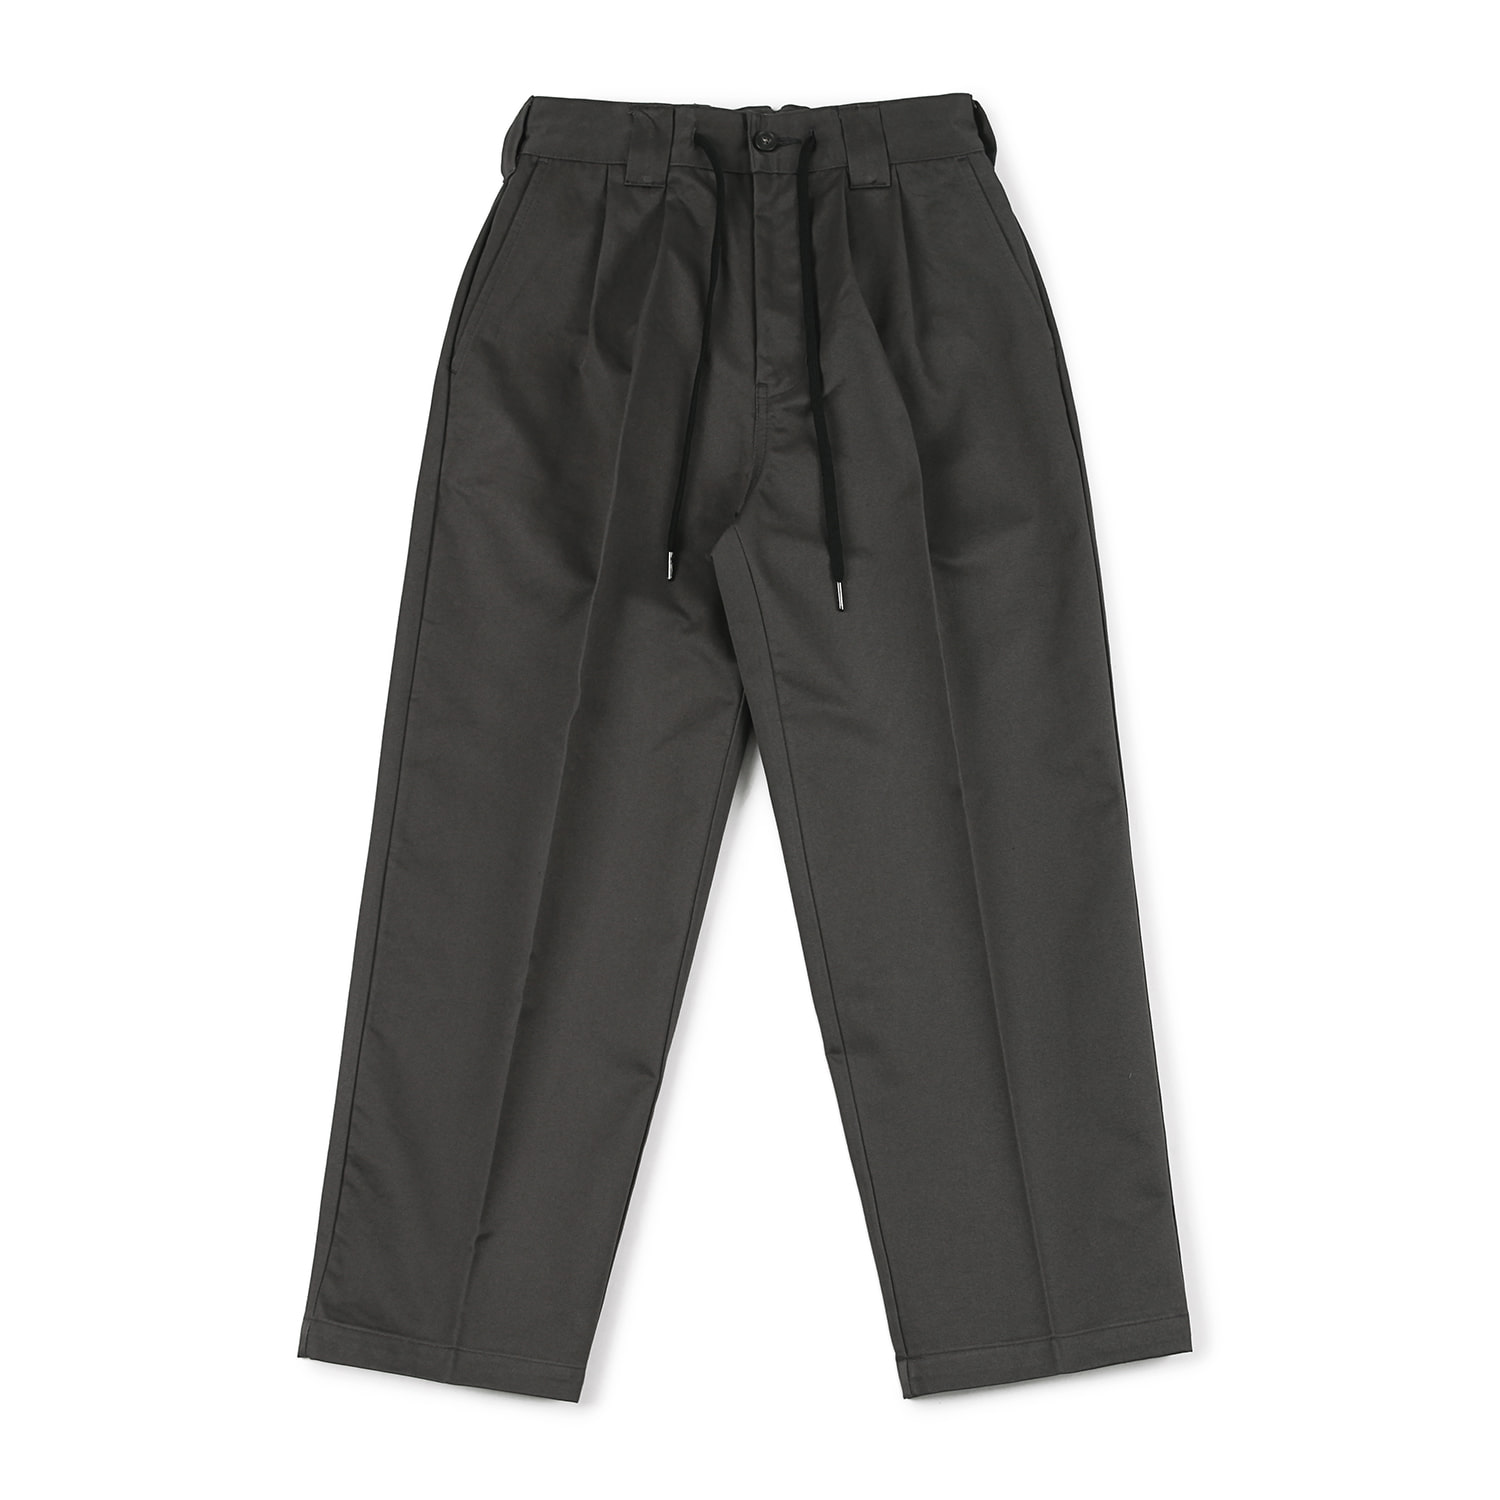 25% OFF_Skater Two tuck Pants (Graphite)